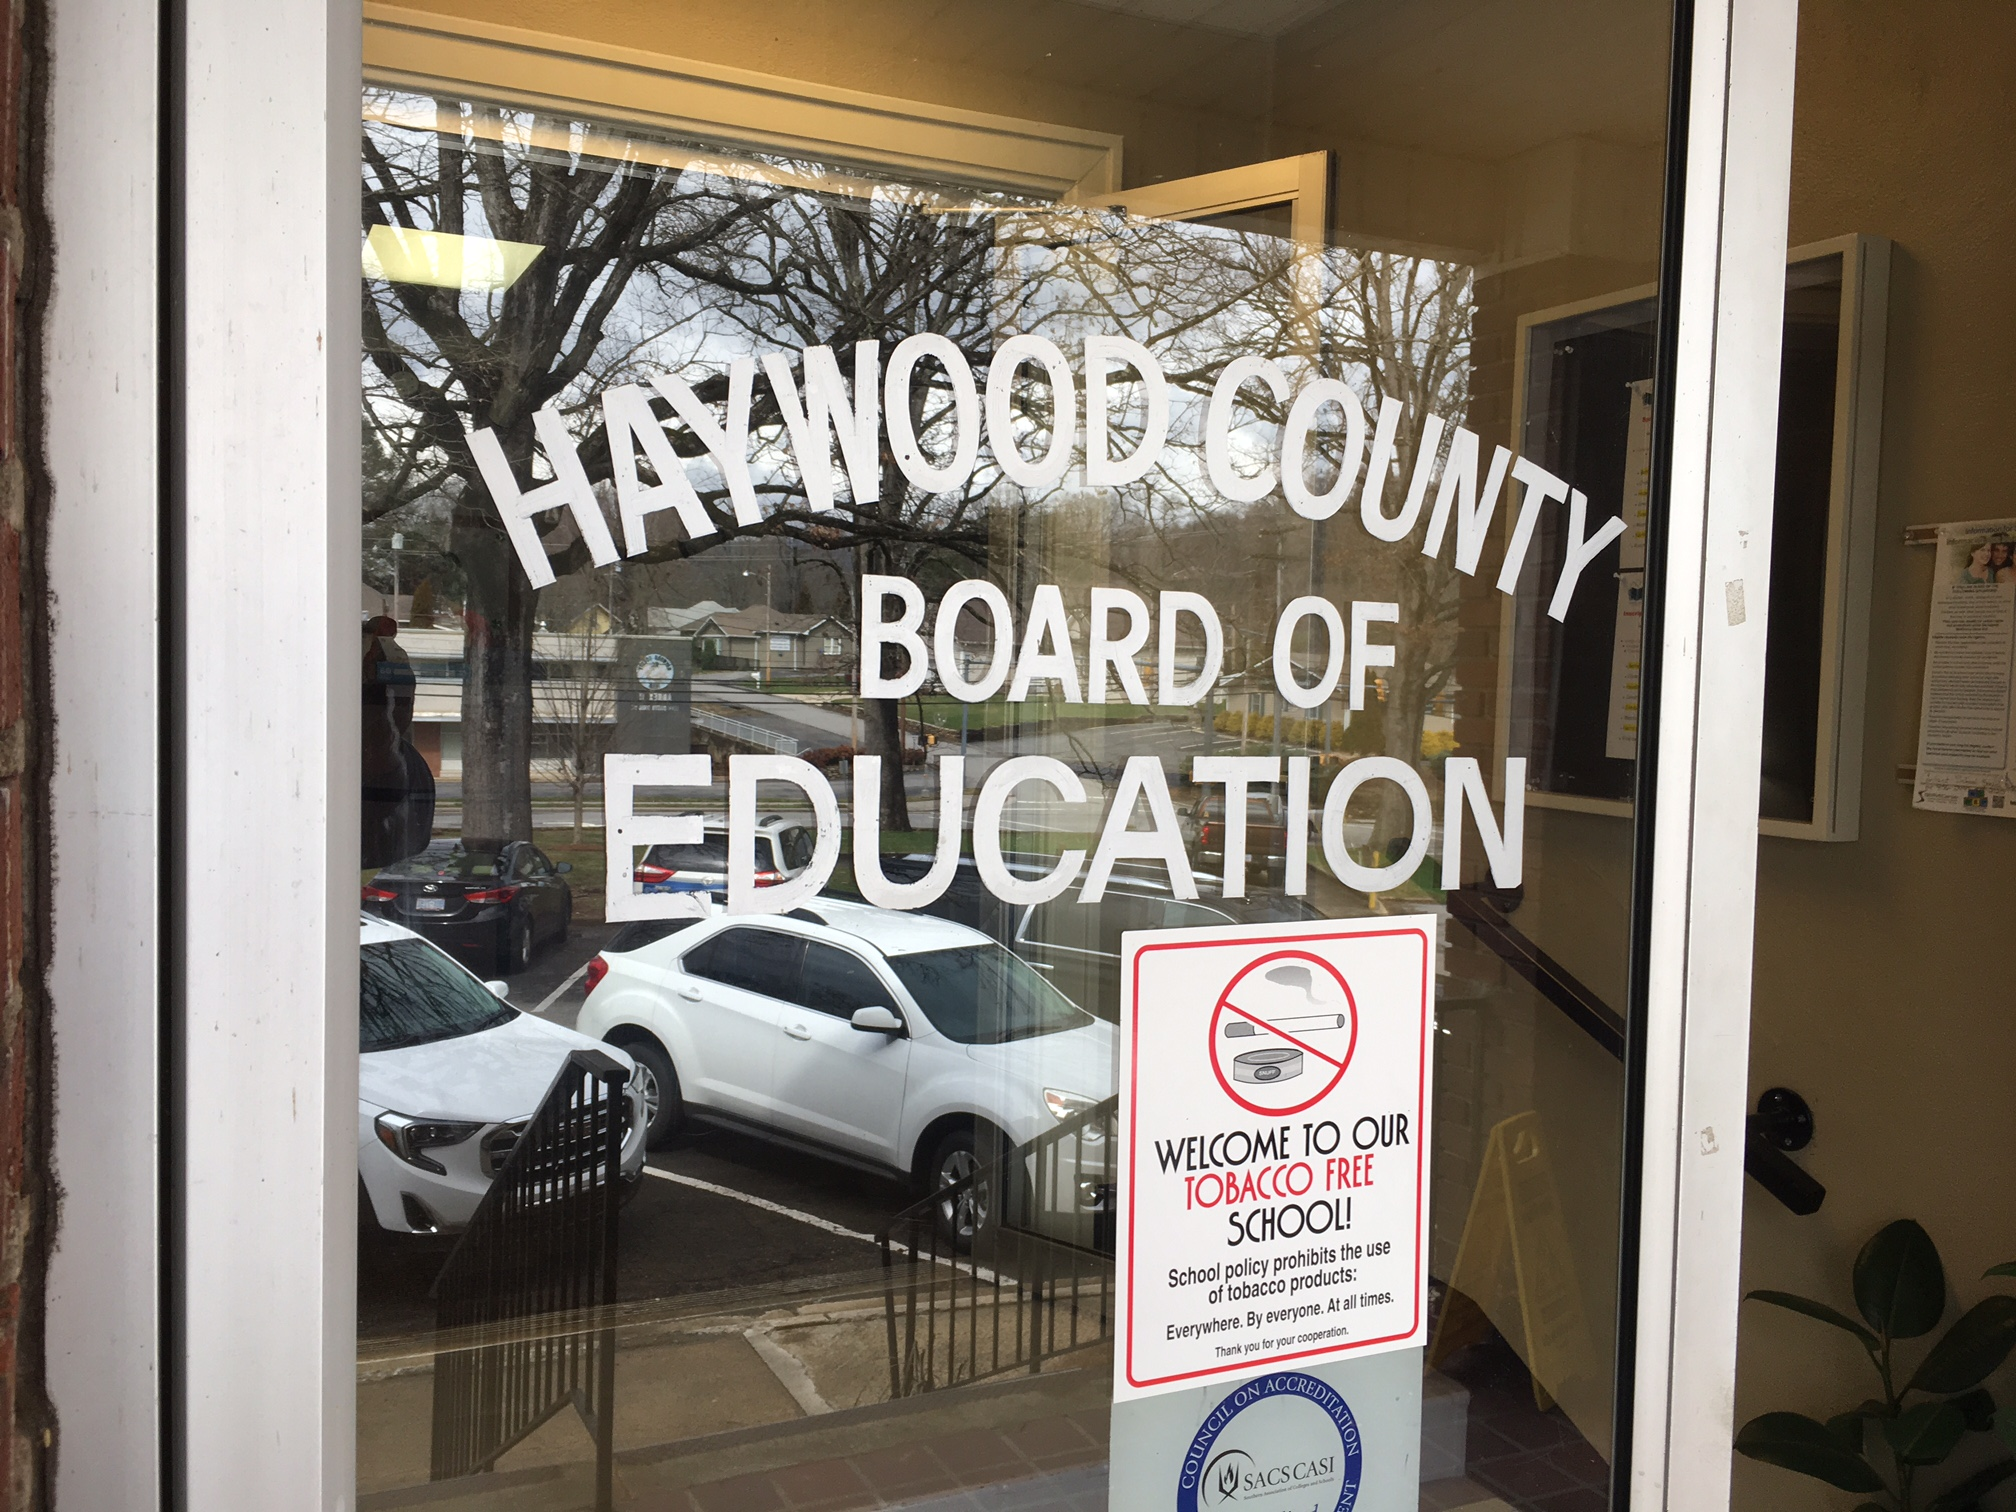 There will be no remote learning in Haywood County schools for a second day after a Ransomware attack against the district's computers. (Photo credit: WLOS staff)